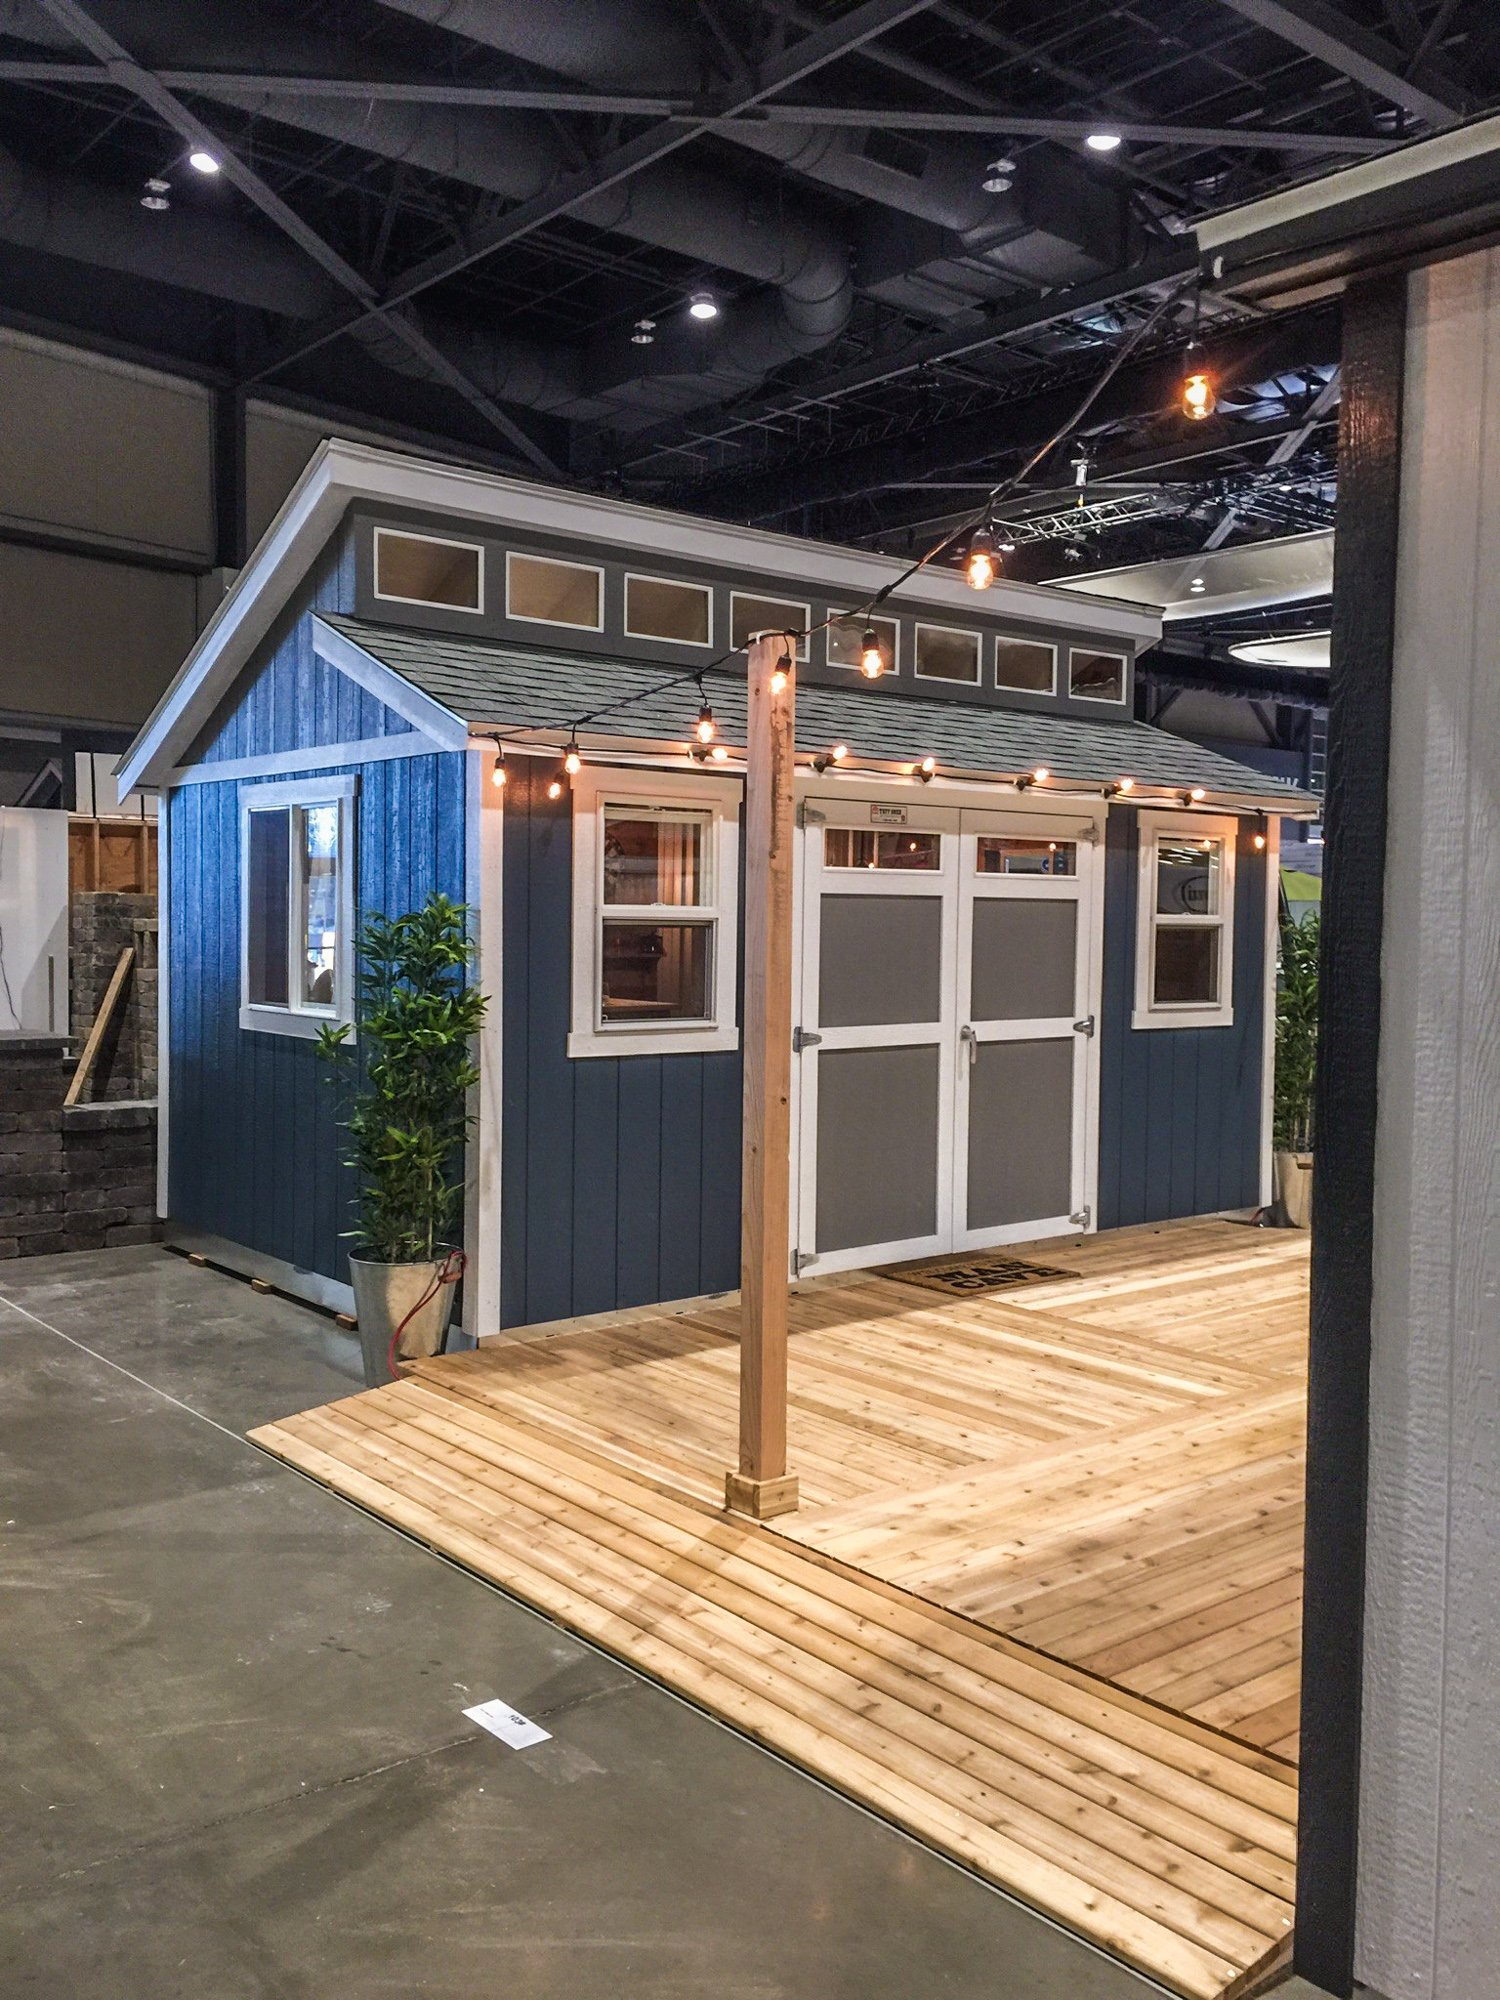 tough shed roof diagram introducing our newest options - tuff shed